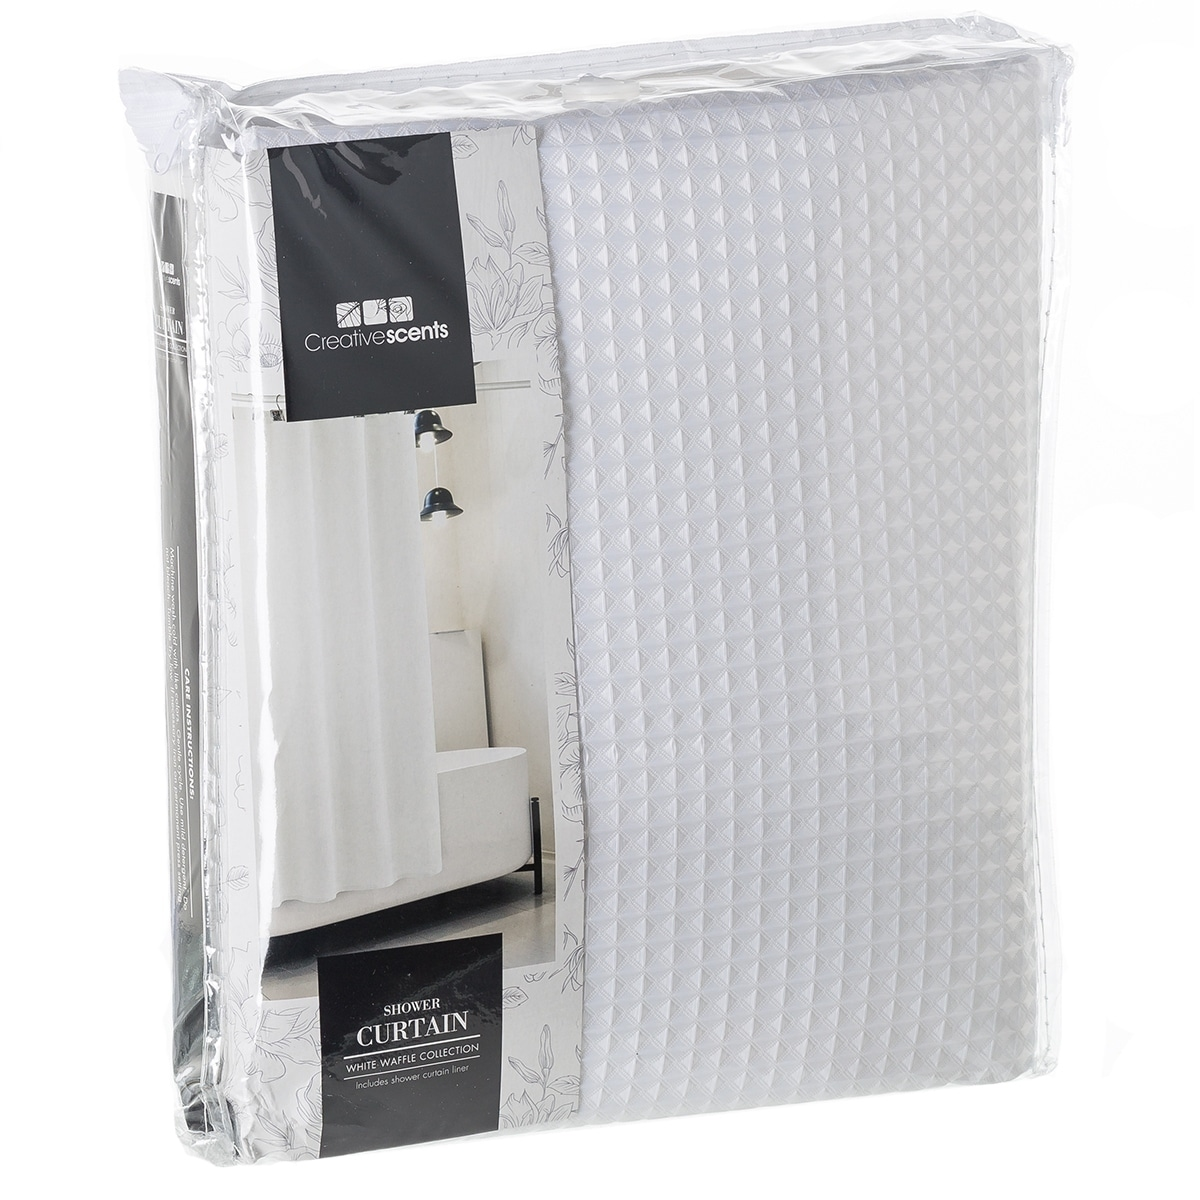 Hotel Quality Waffle White Fabric Shower Curtain Includes Free PEVA Liner